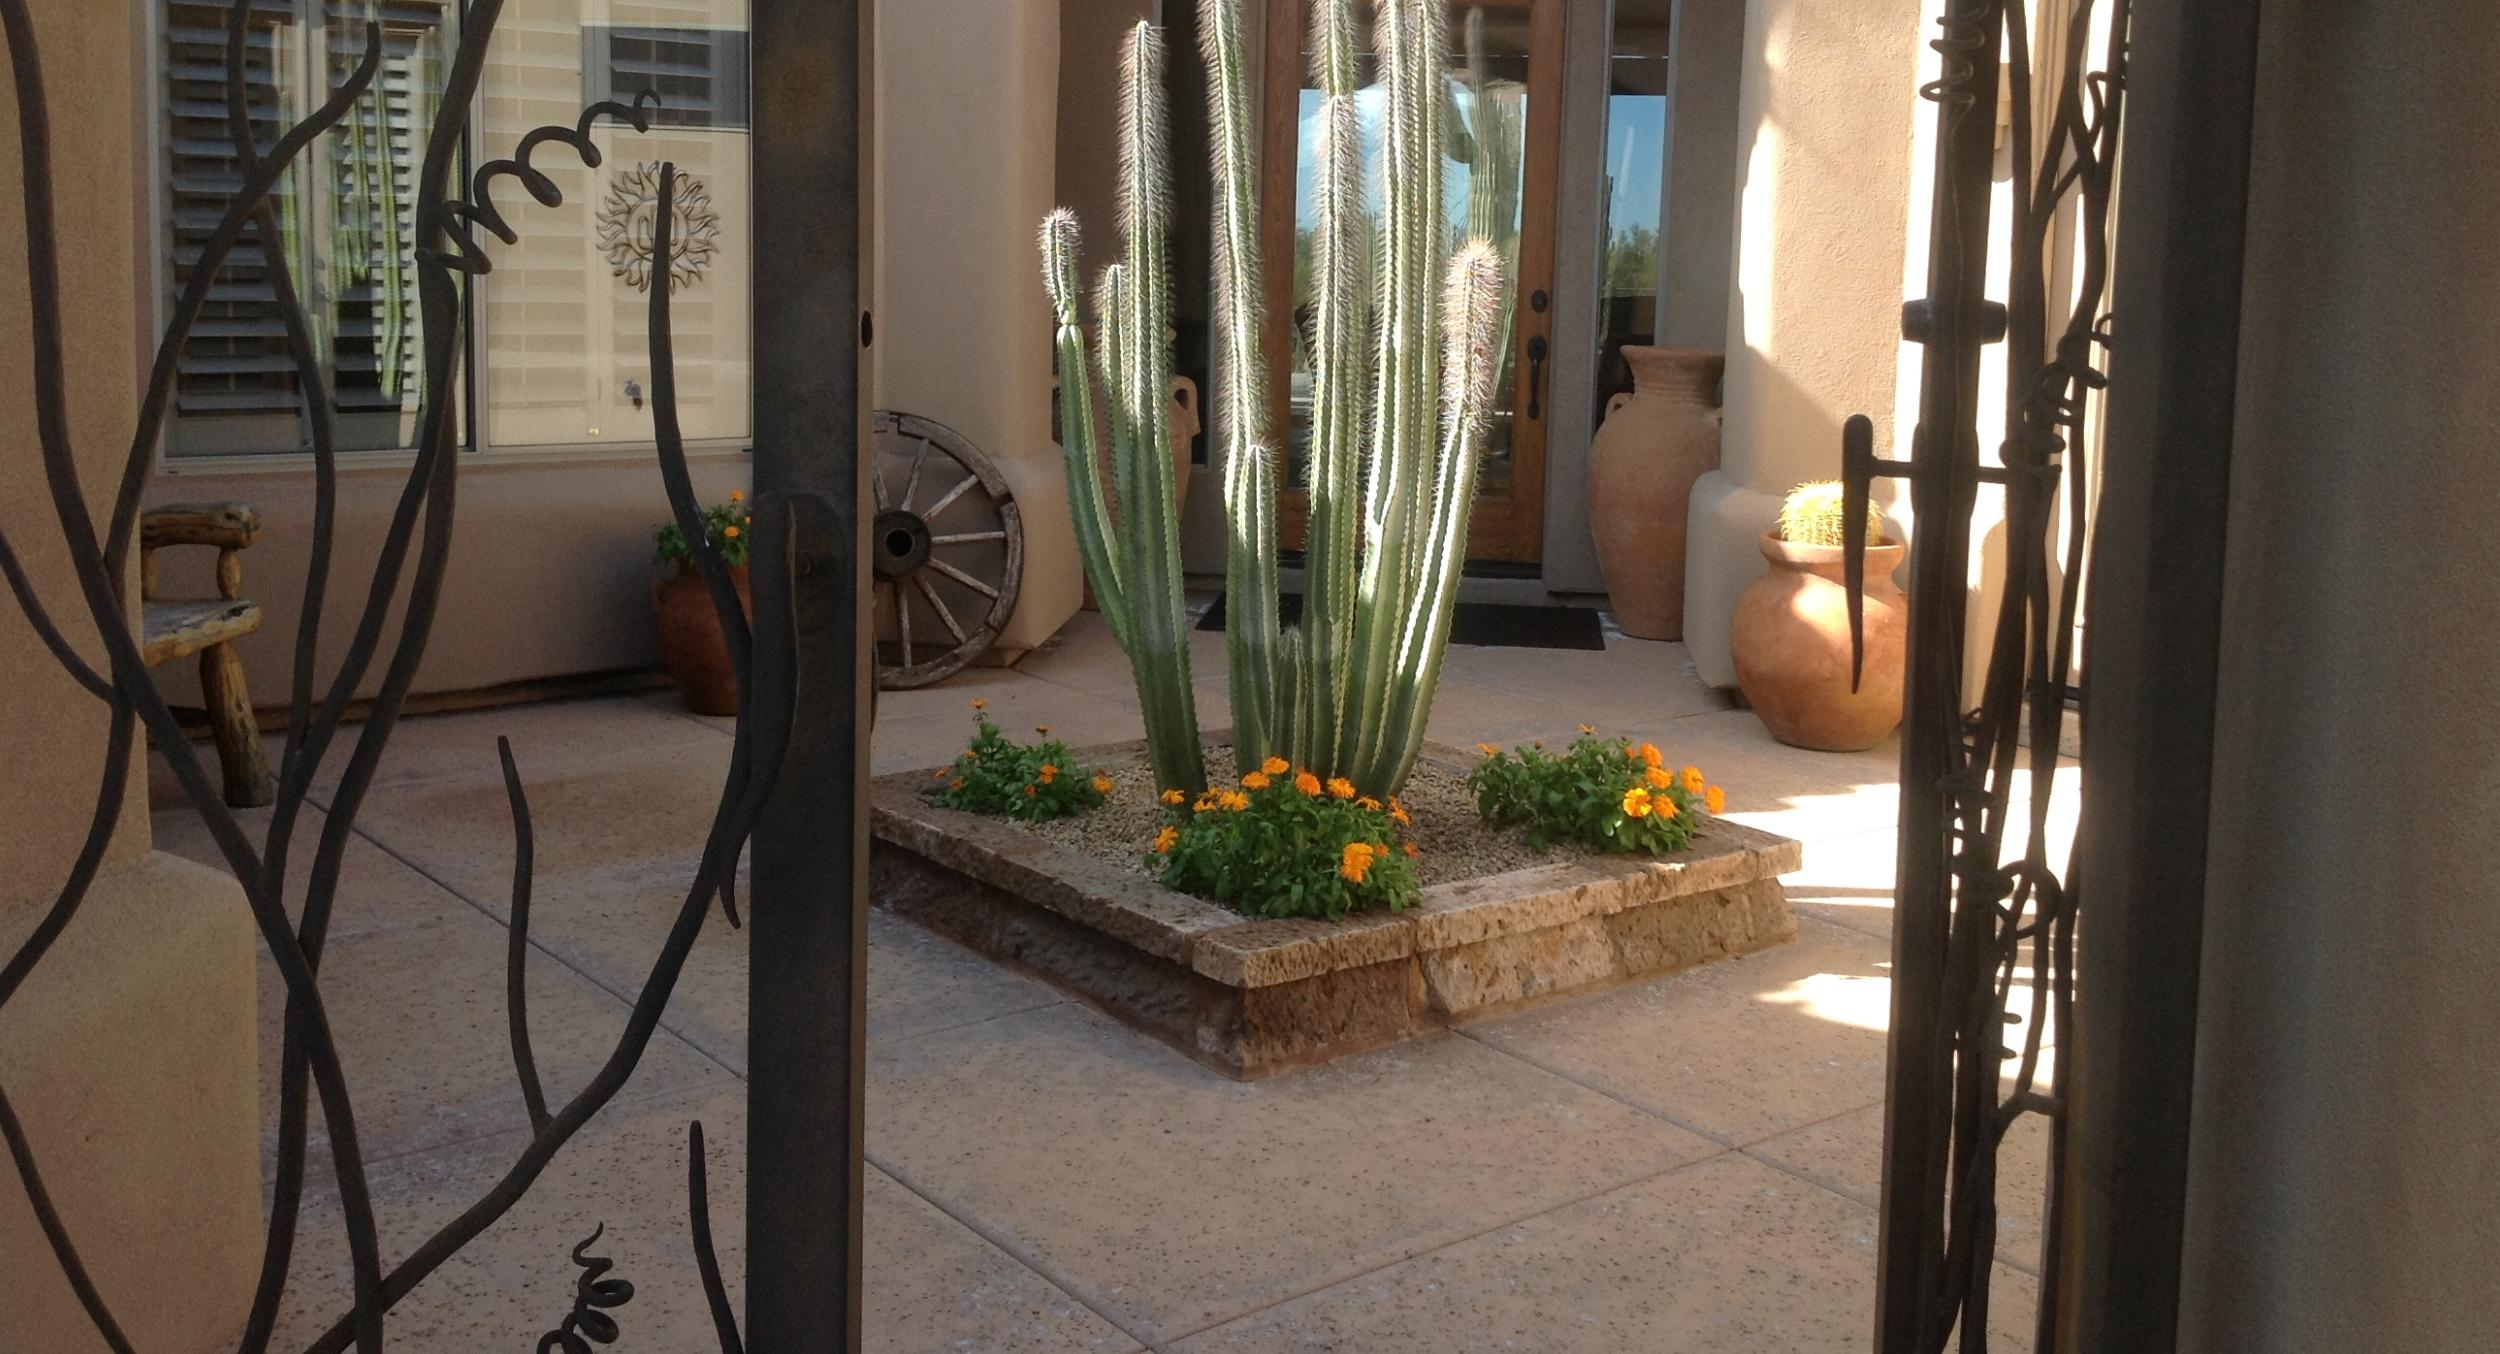 The understated elegance Cantera stone is amazing. The perfect floor material in this courtyard landscaping, Scottsdale installation by Desert Crest.